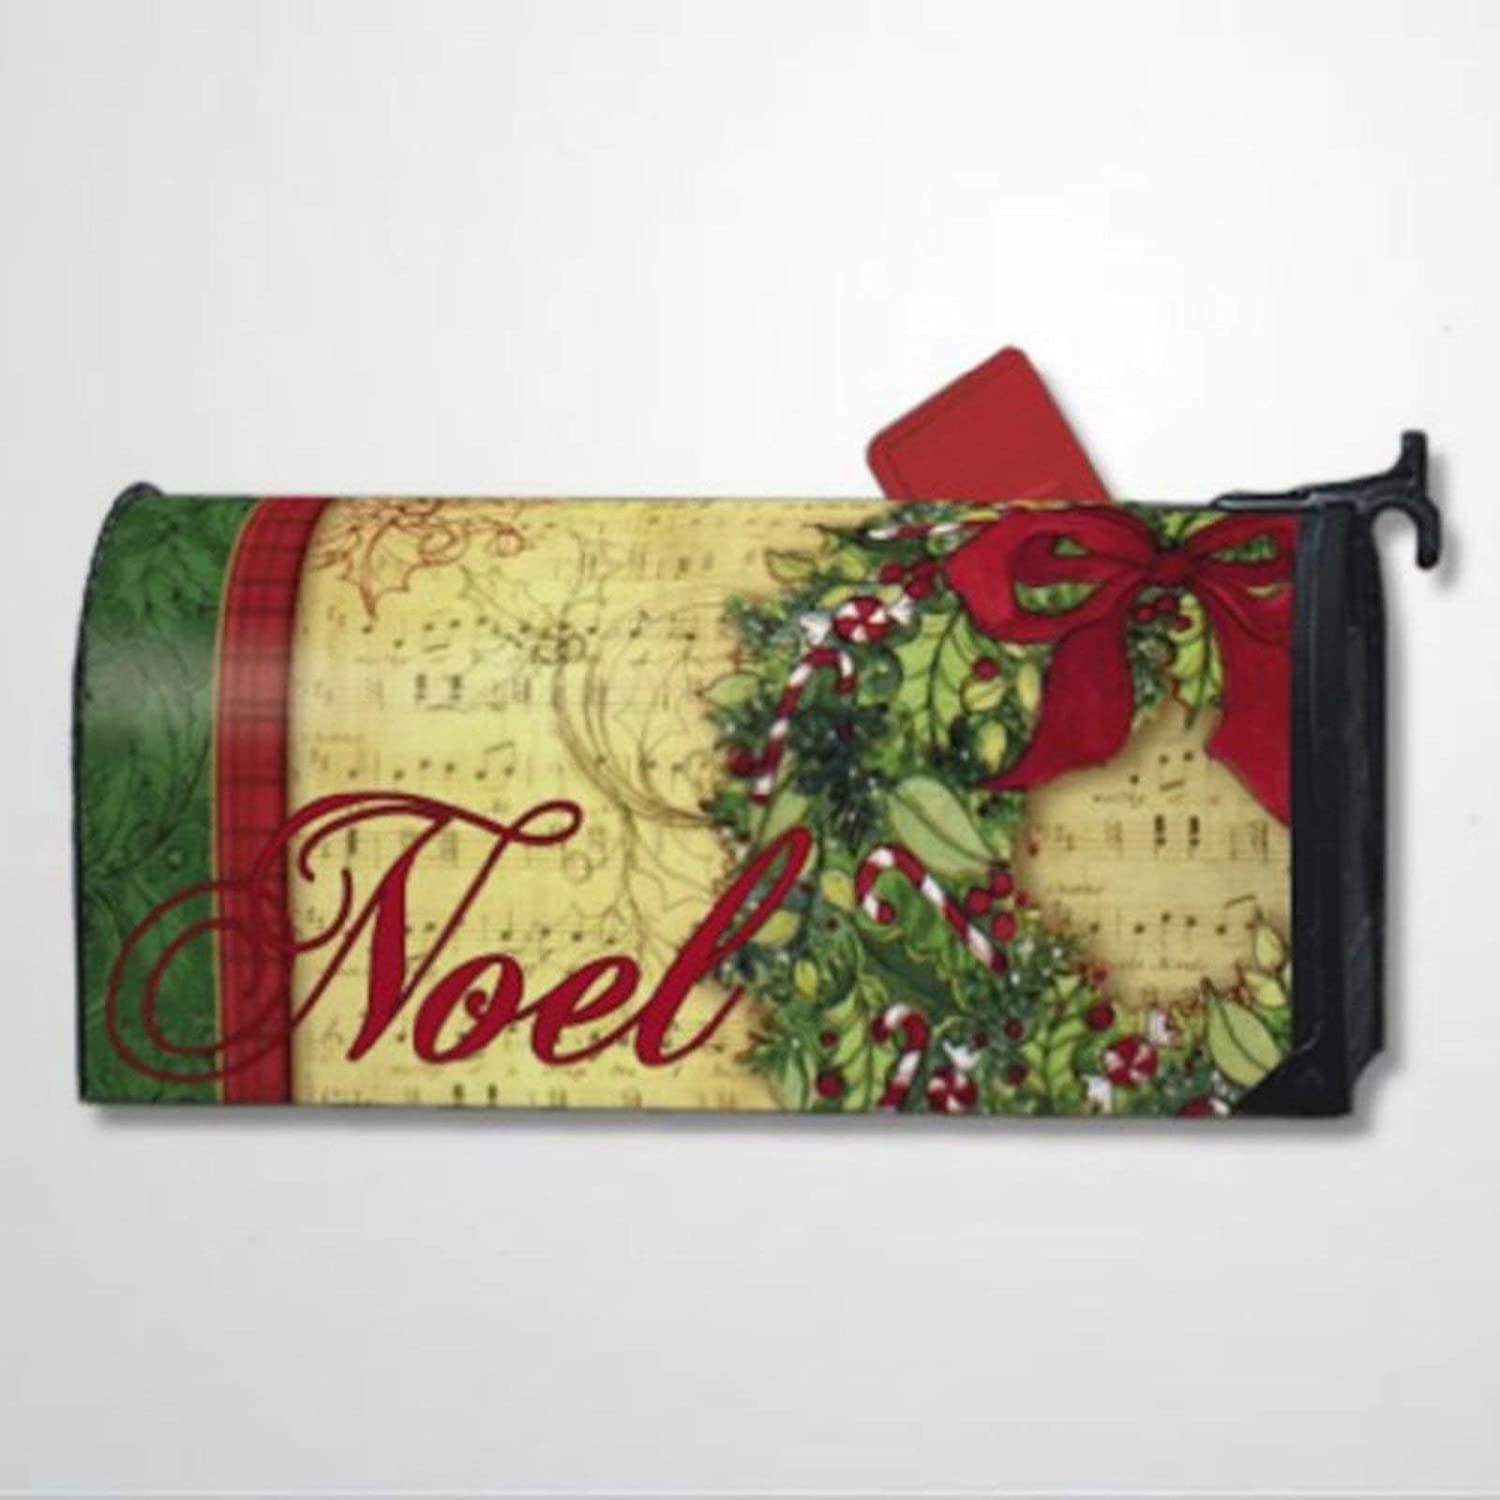 BYRON HOYLE Noel Retro Christmas Decor Mailbox Covers Magnetic Mailbox Wraps Post Letter Box Cover Home Garden Yard Outdoor Decor